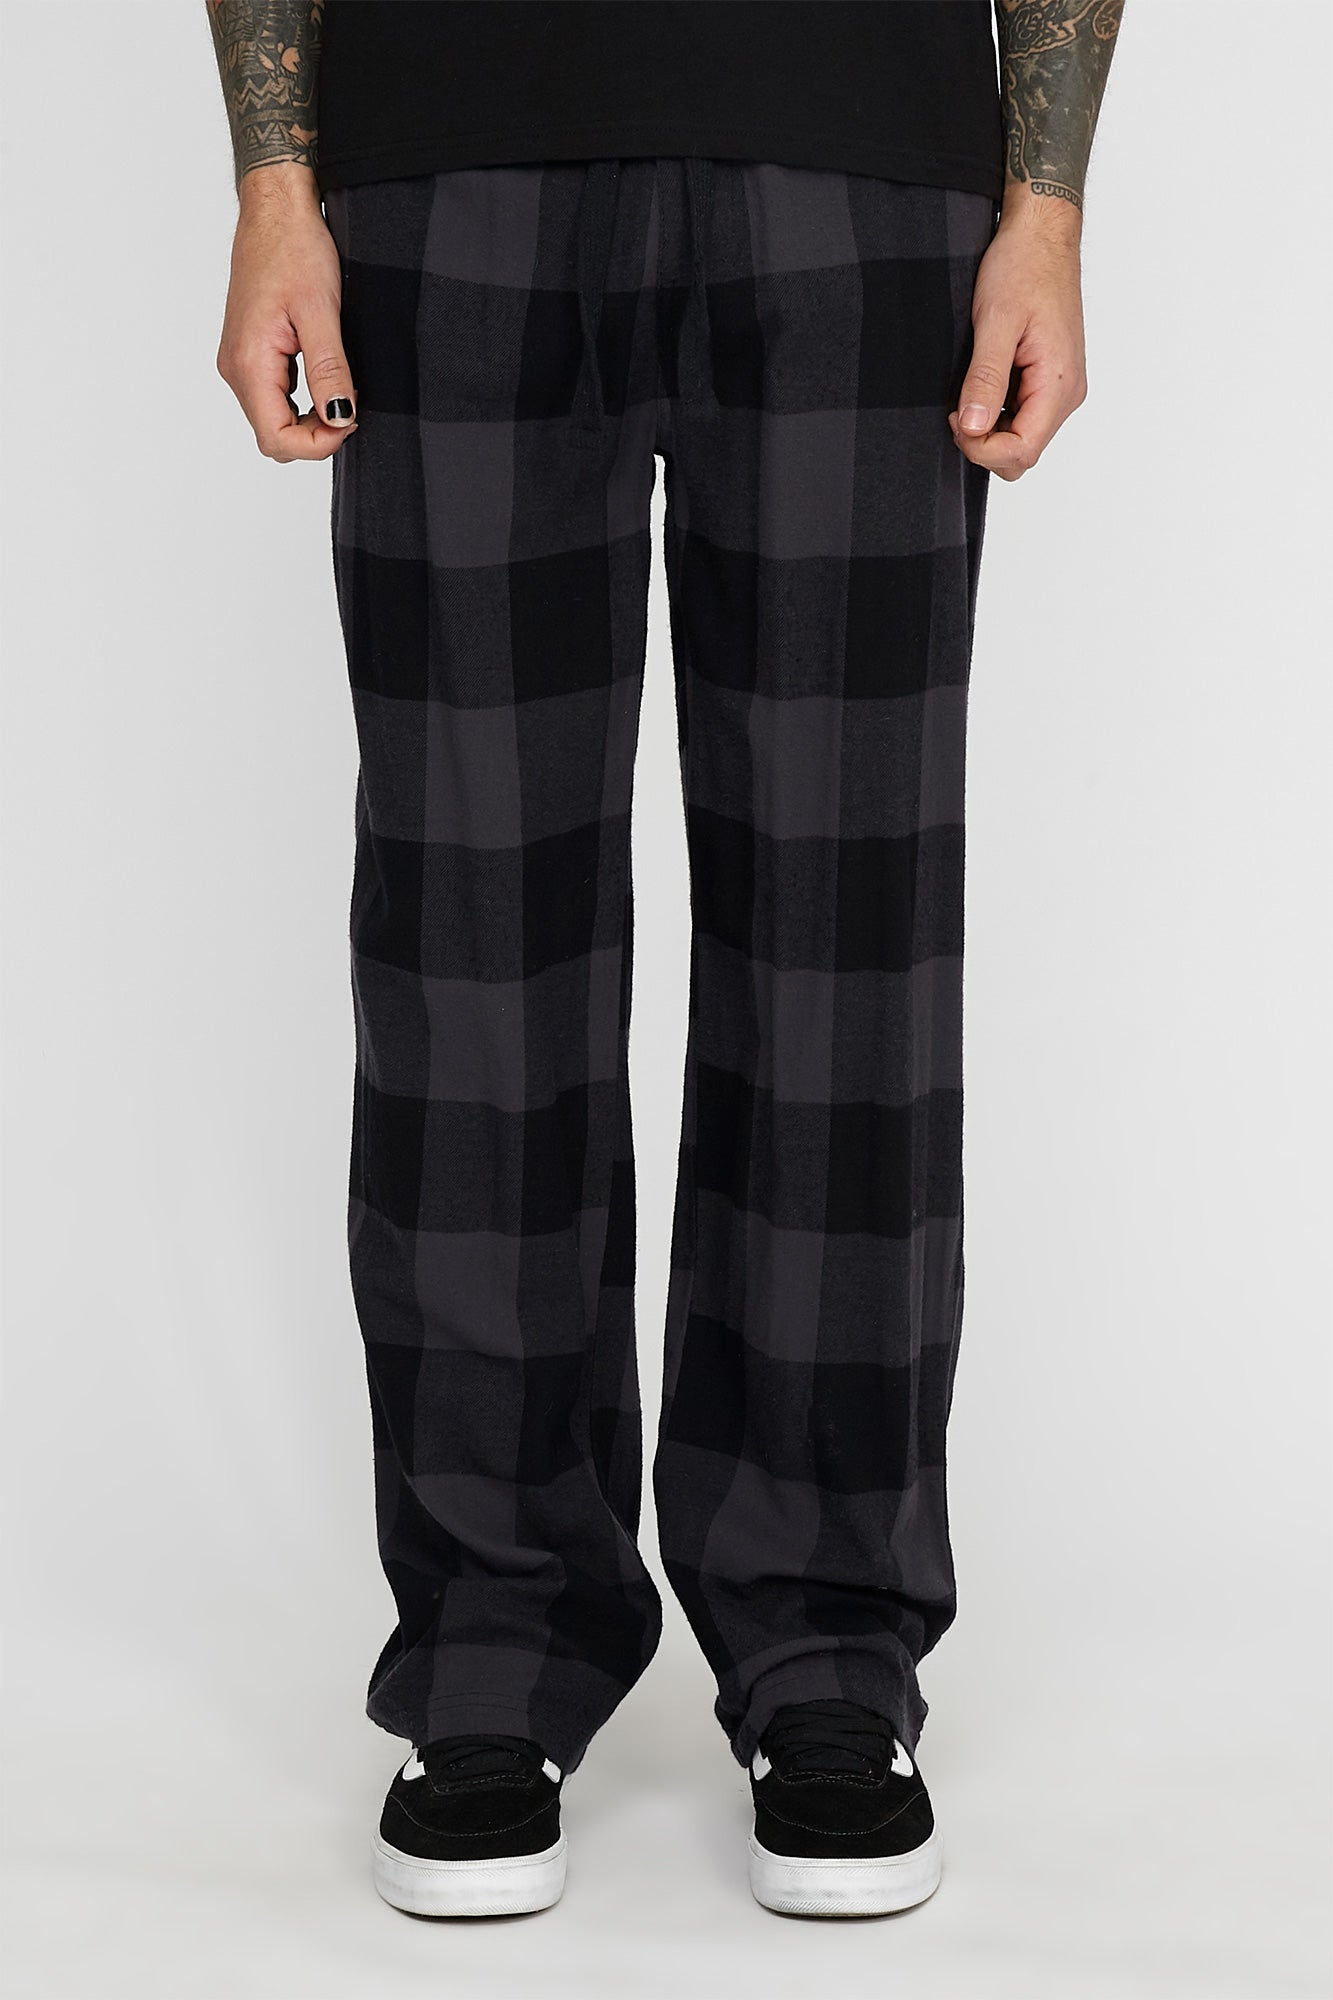 West49 Mens Plaid Pyjama Pants